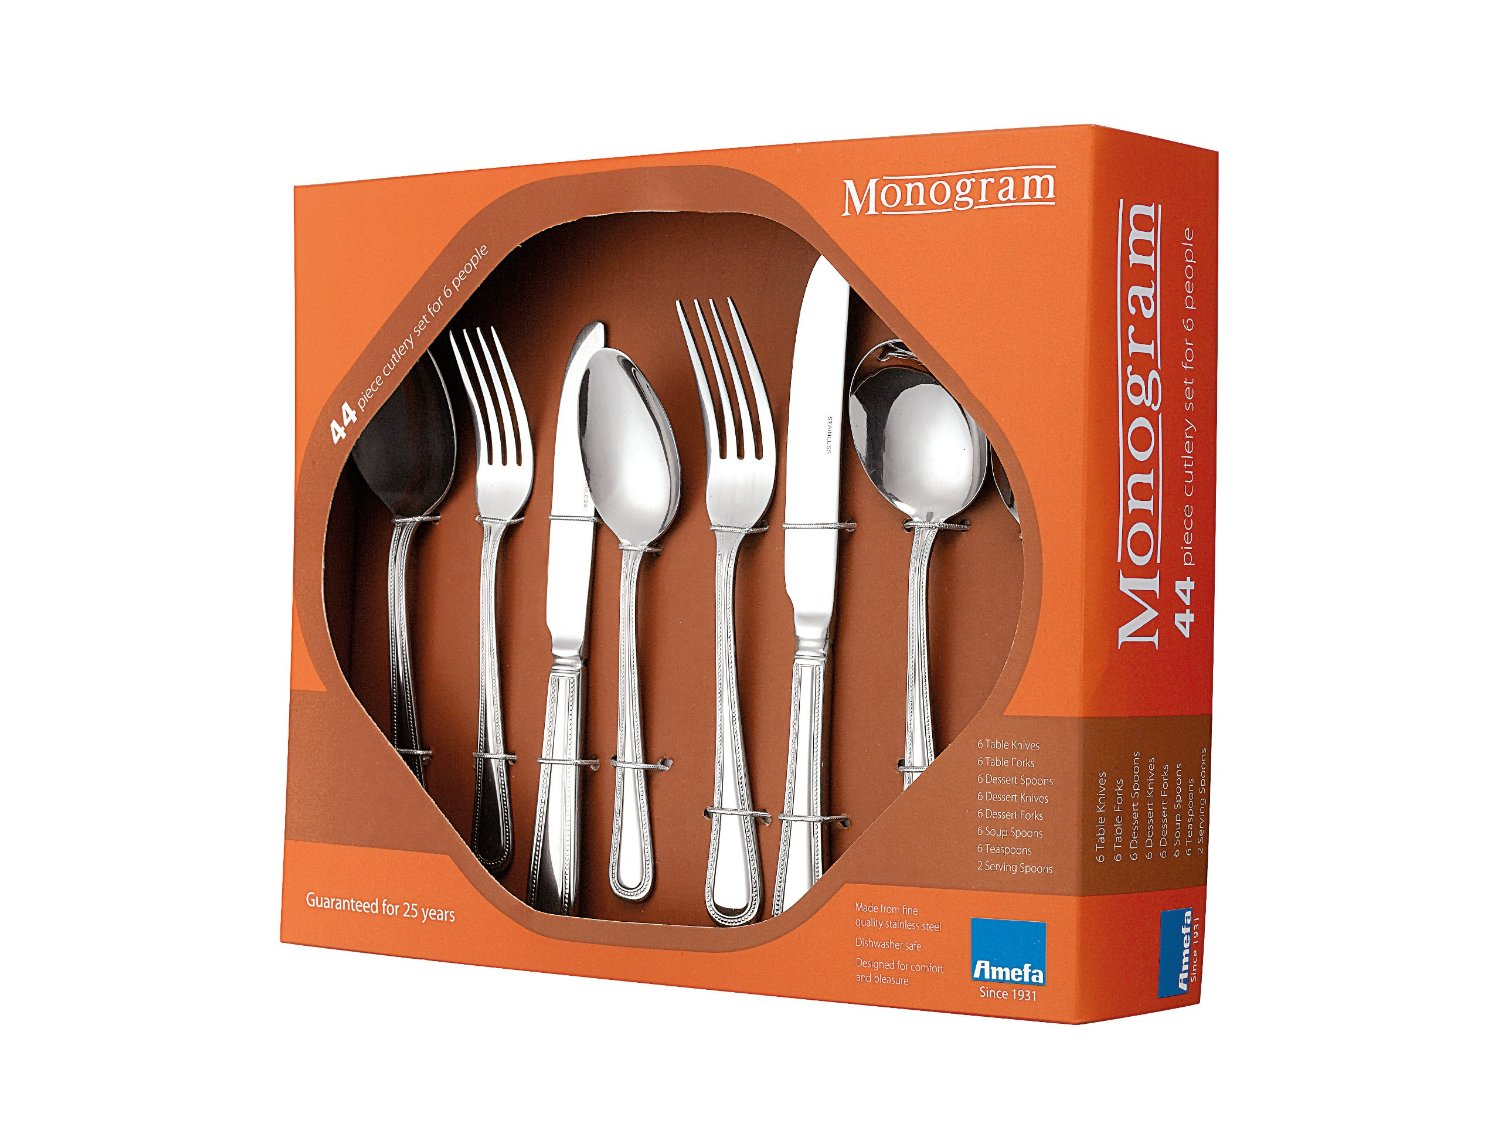 Myer Cutlery Set Bronagh Mcwilliams And Niall Mceldowney Glenview Gift Centre